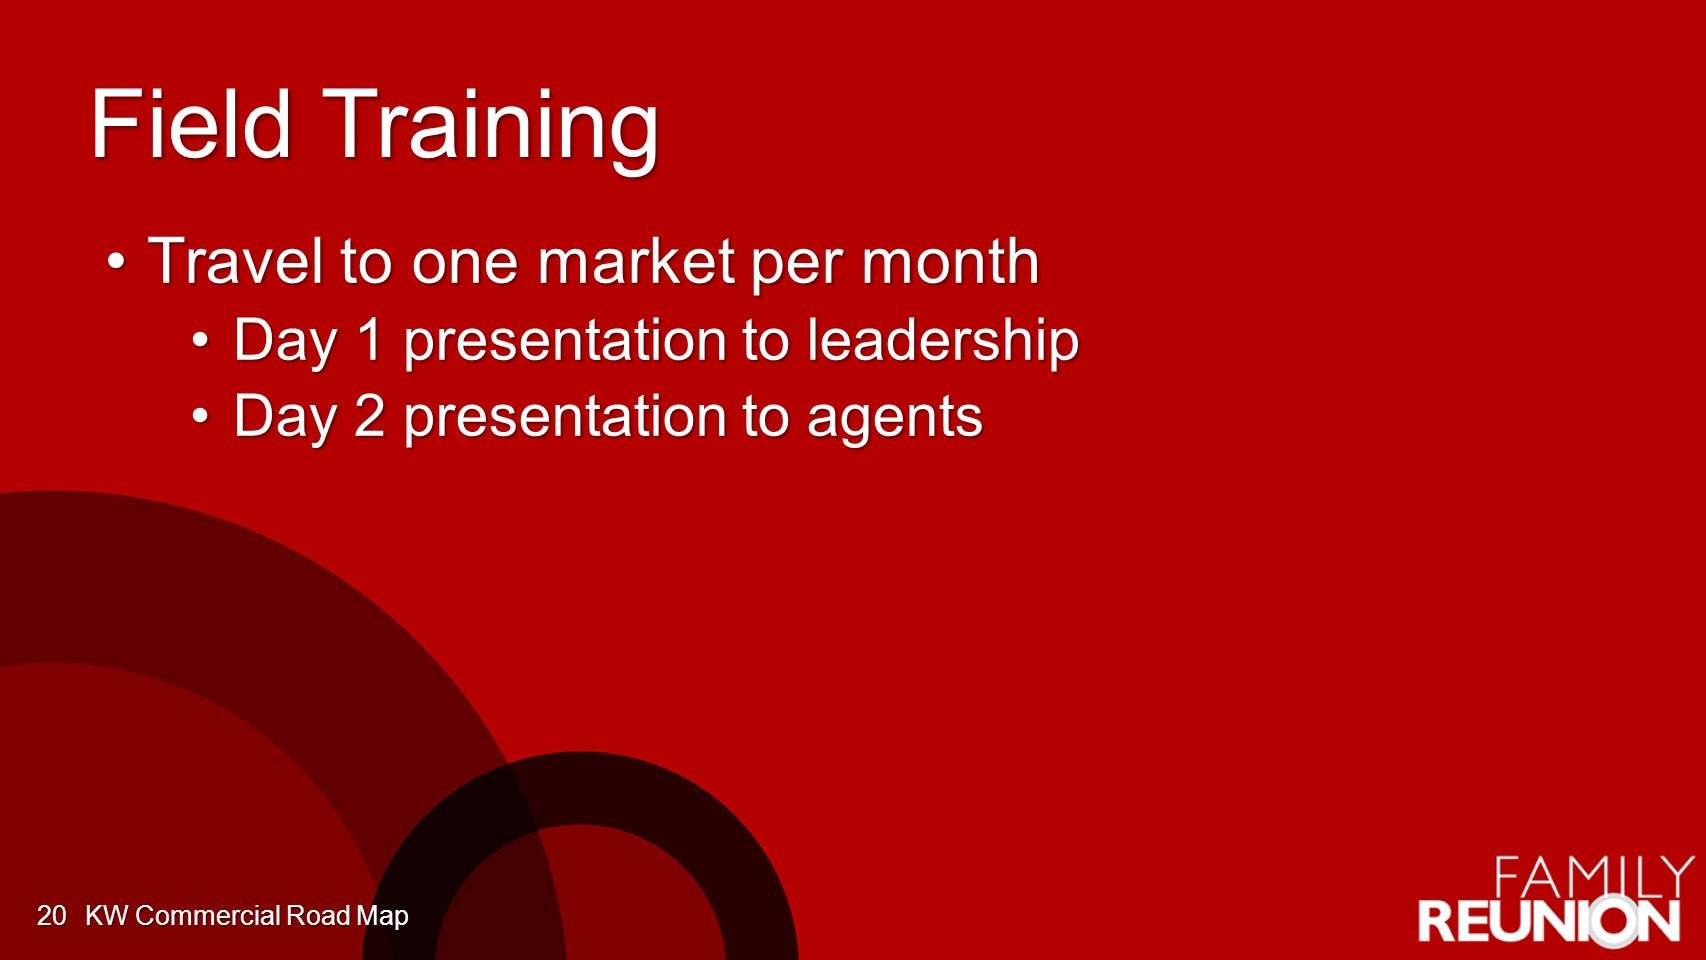 Field Training Travel to one market per monthTravel to one market per month Day 1 presentation to leadershipDay 1 presentation to leadership Day 2 presentation to agentsDay 2 presentation to agents KW Commercial Road Map20